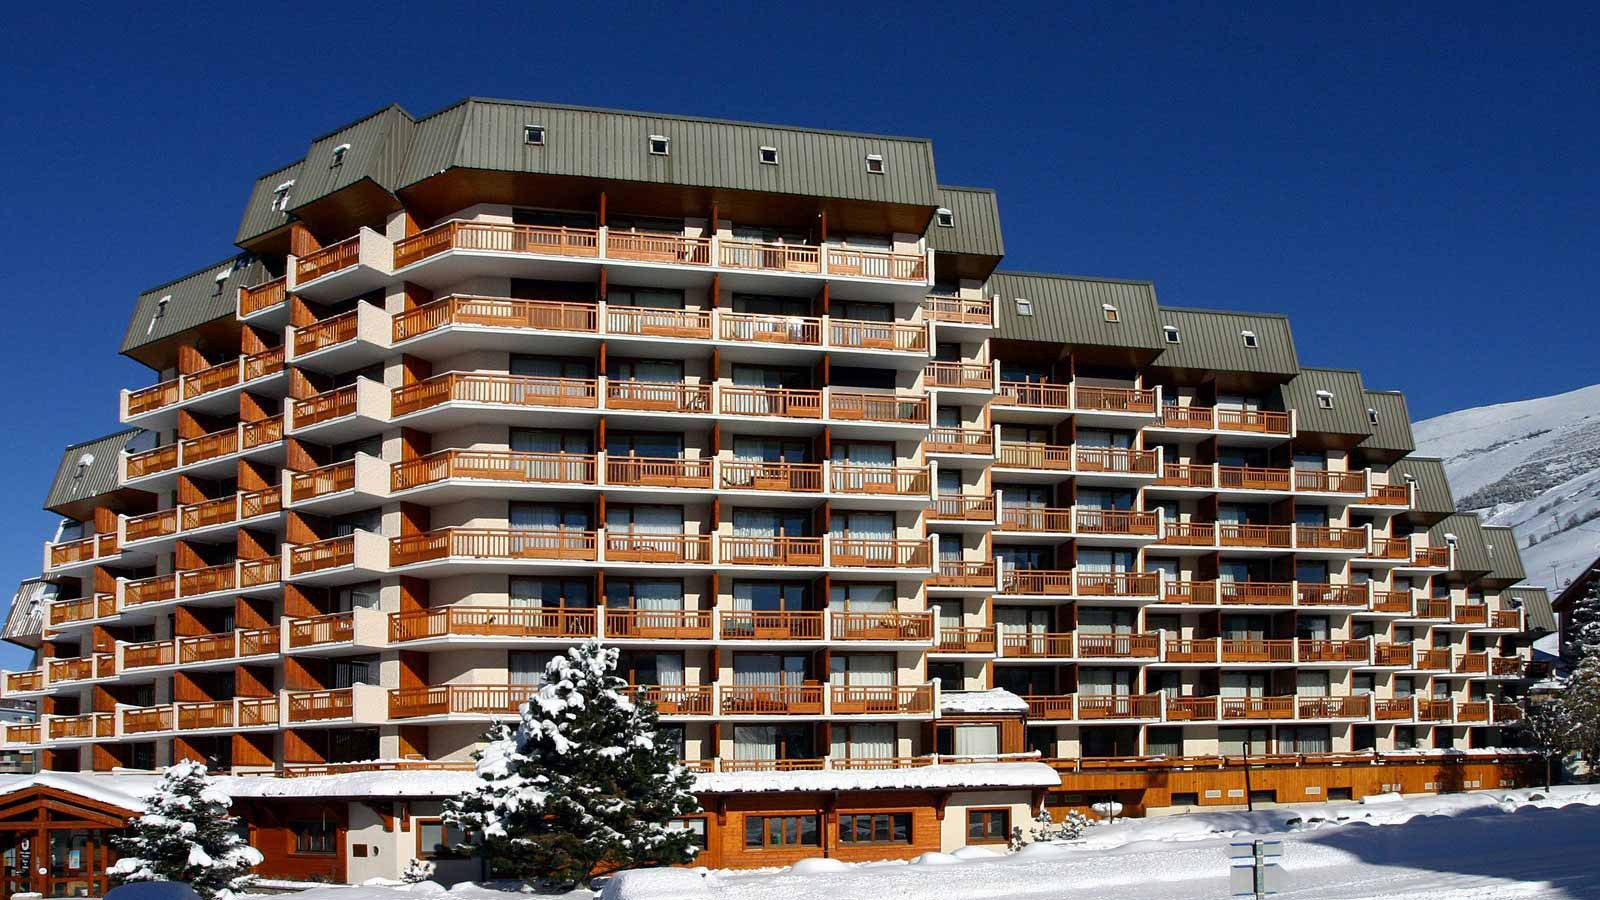 Multi-Residence 1605, Apartment in Les Deux Alpes - Exterior